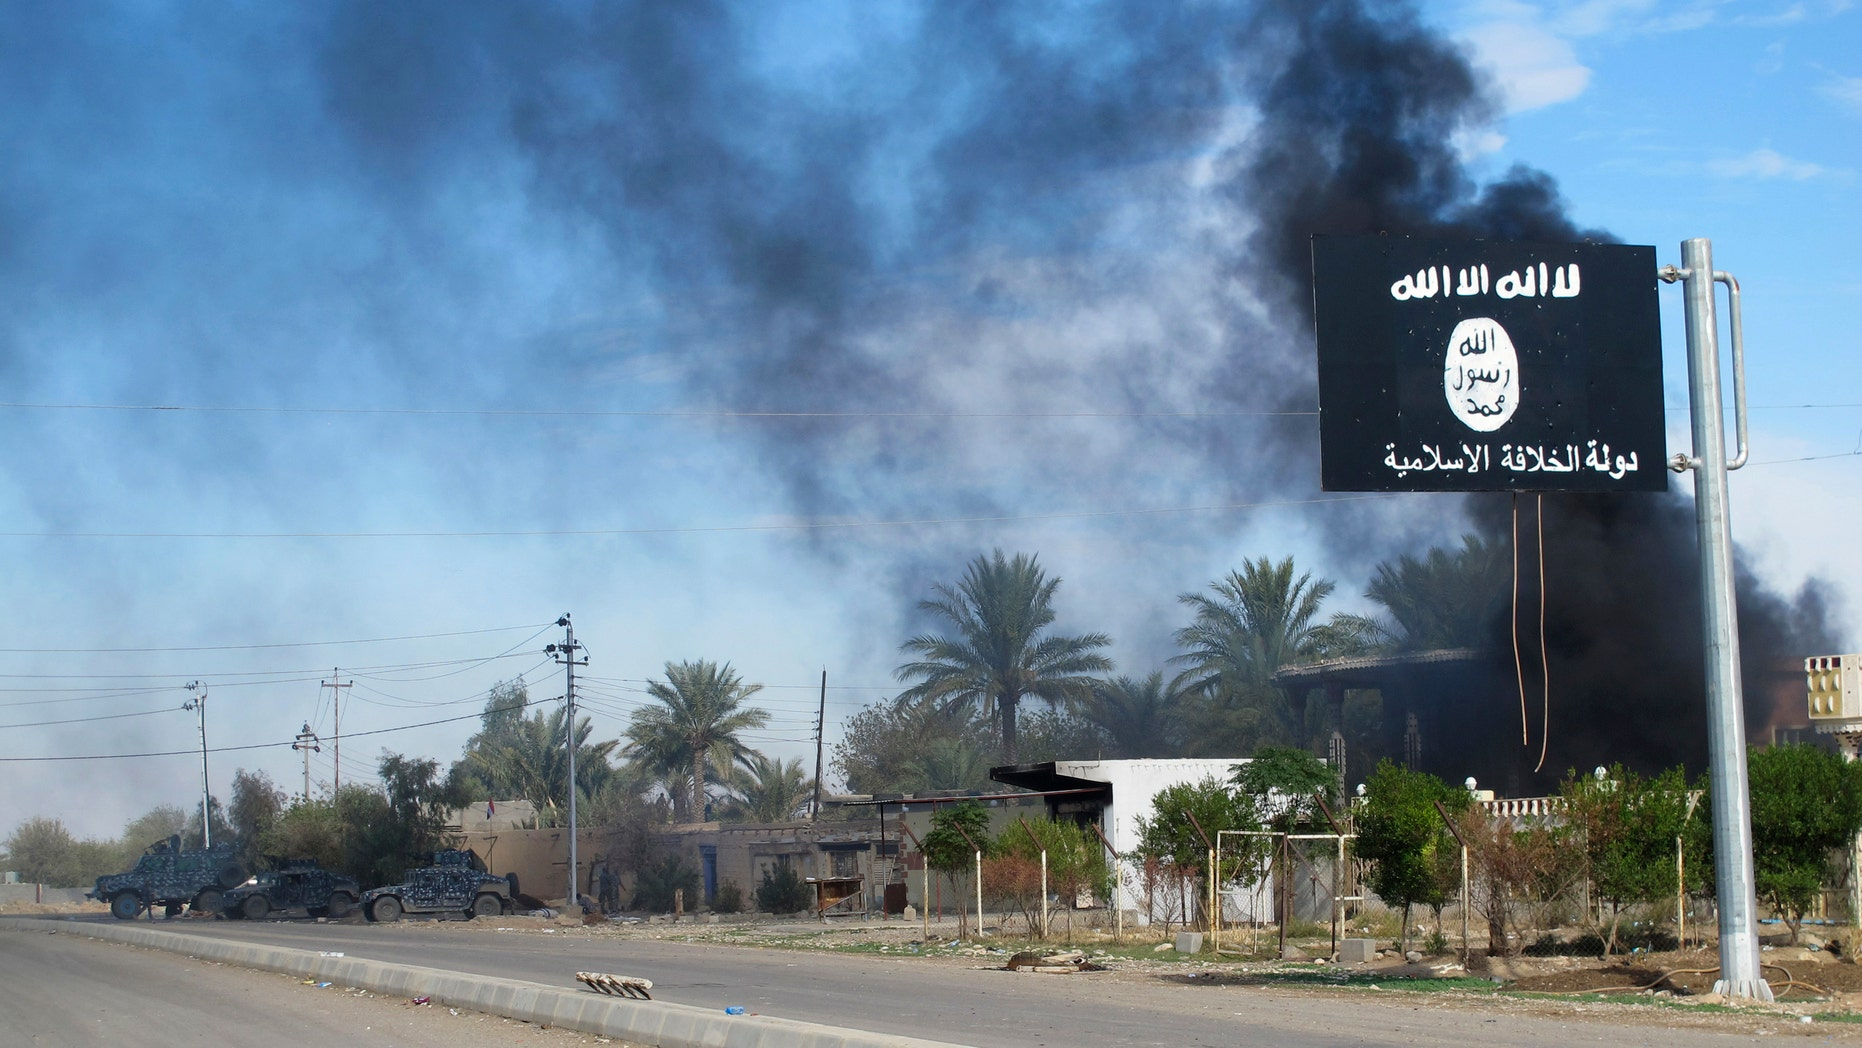 File photo - Smoke raises behind an Islamic State flag after Iraqi security forces and Shiite fighters took control of Saadiya in Diyala province from Islamist State militants, Nov. 24, 2014. (REUTERS/Stringer)